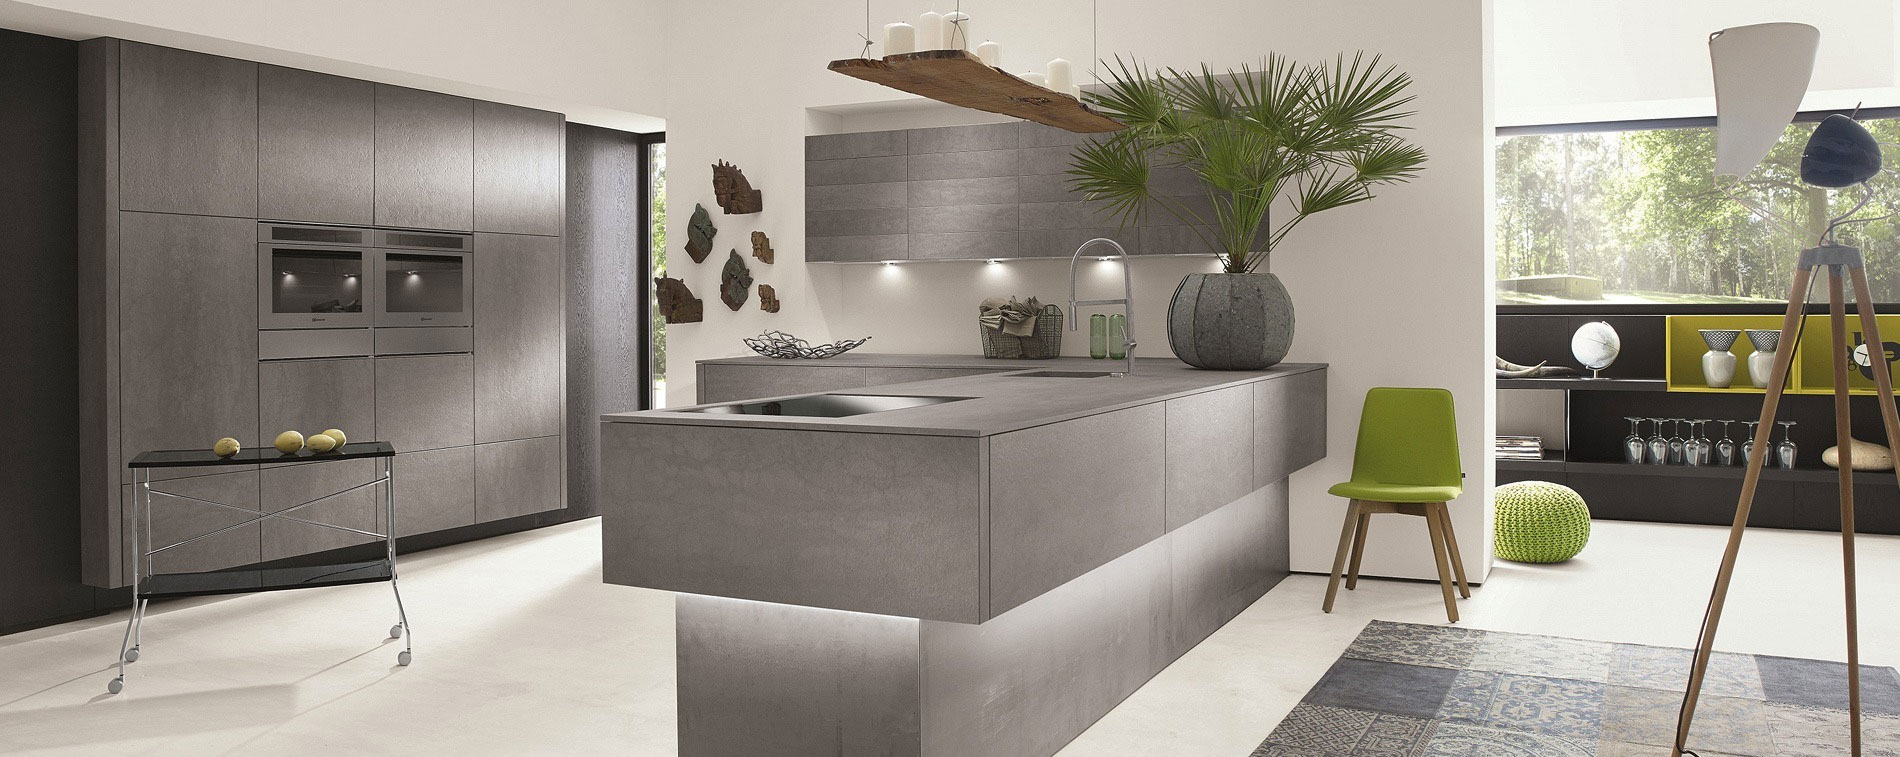 European Custom Kitchen Design